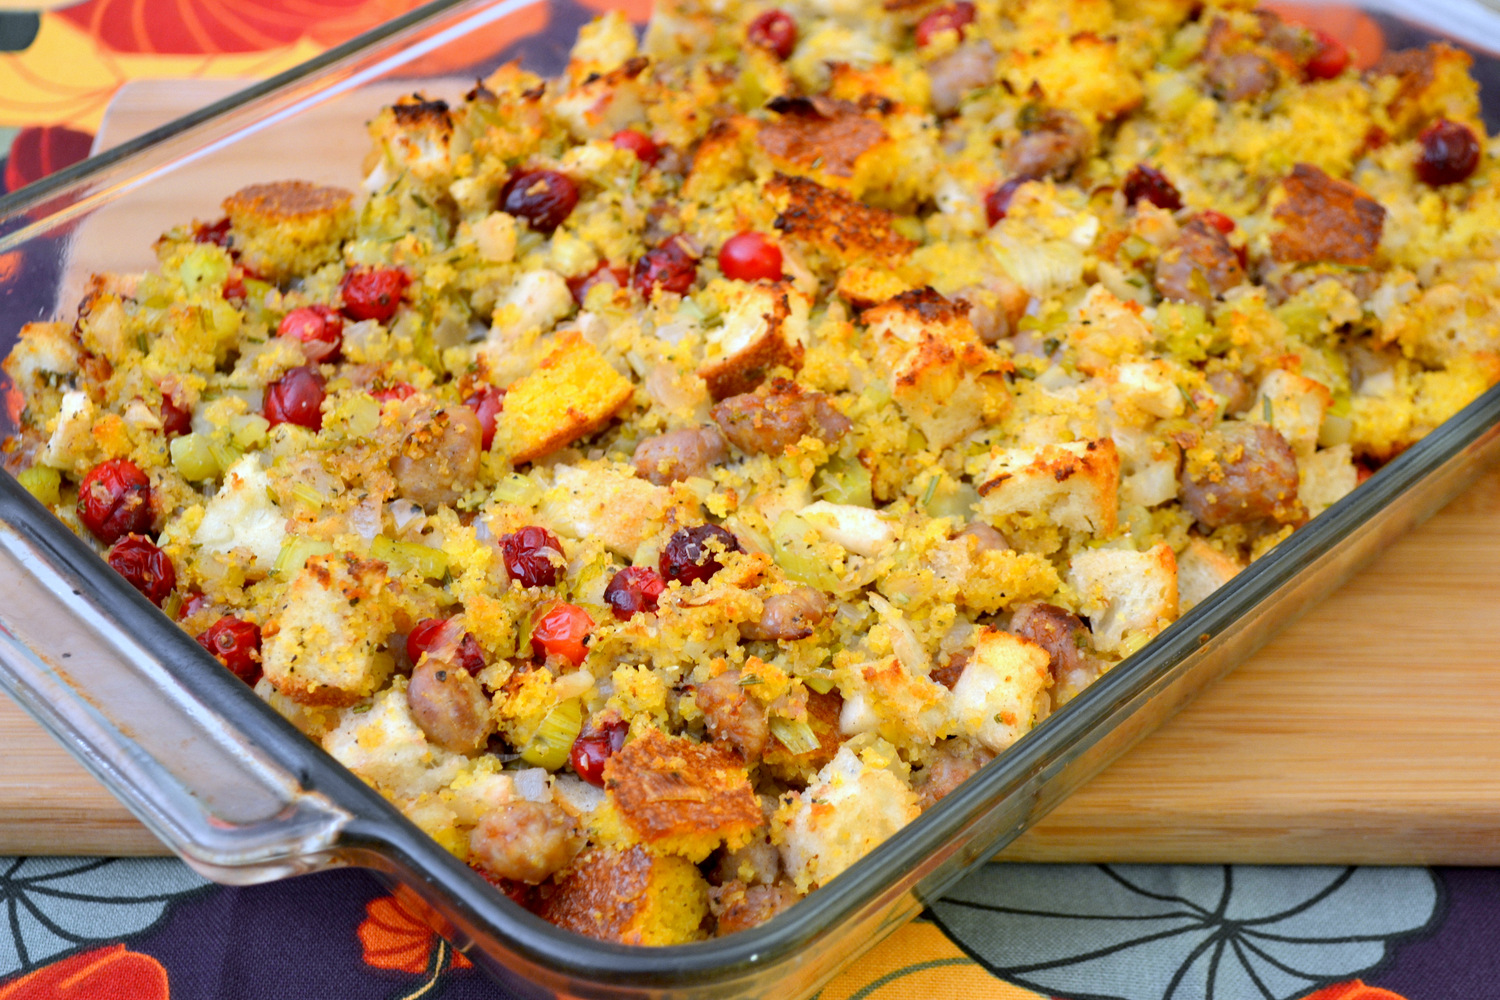 Cornbread, Sausage, and Cranberry Stuffing